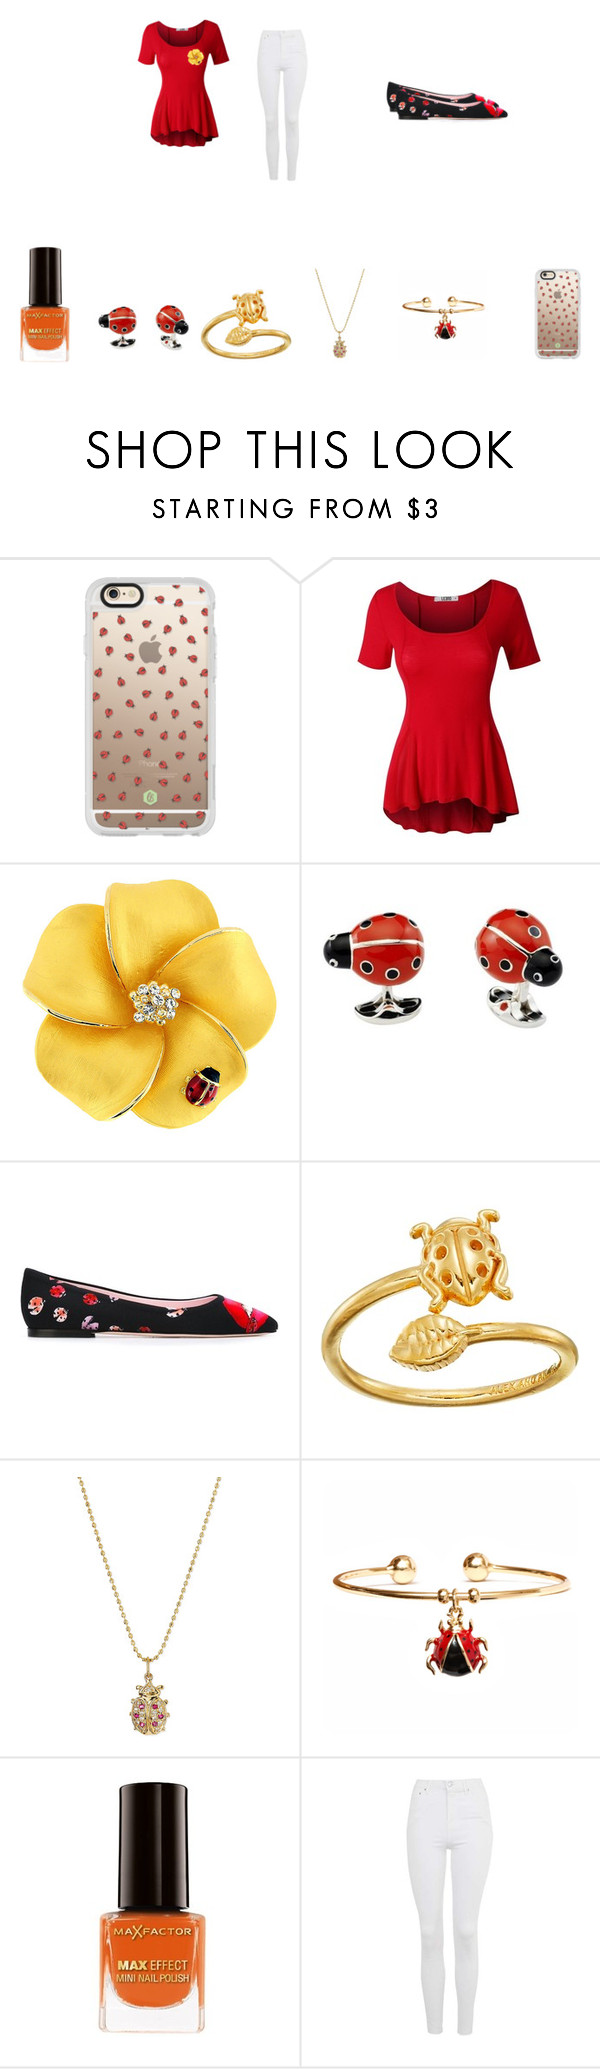 """The Lady, BUG!"" by puppycat0107 on Polyvore featuring Casetify, LE3NO, Giamba, Alex and Ani, Sydney Evan, Peermont, Max Factor and Topshop"